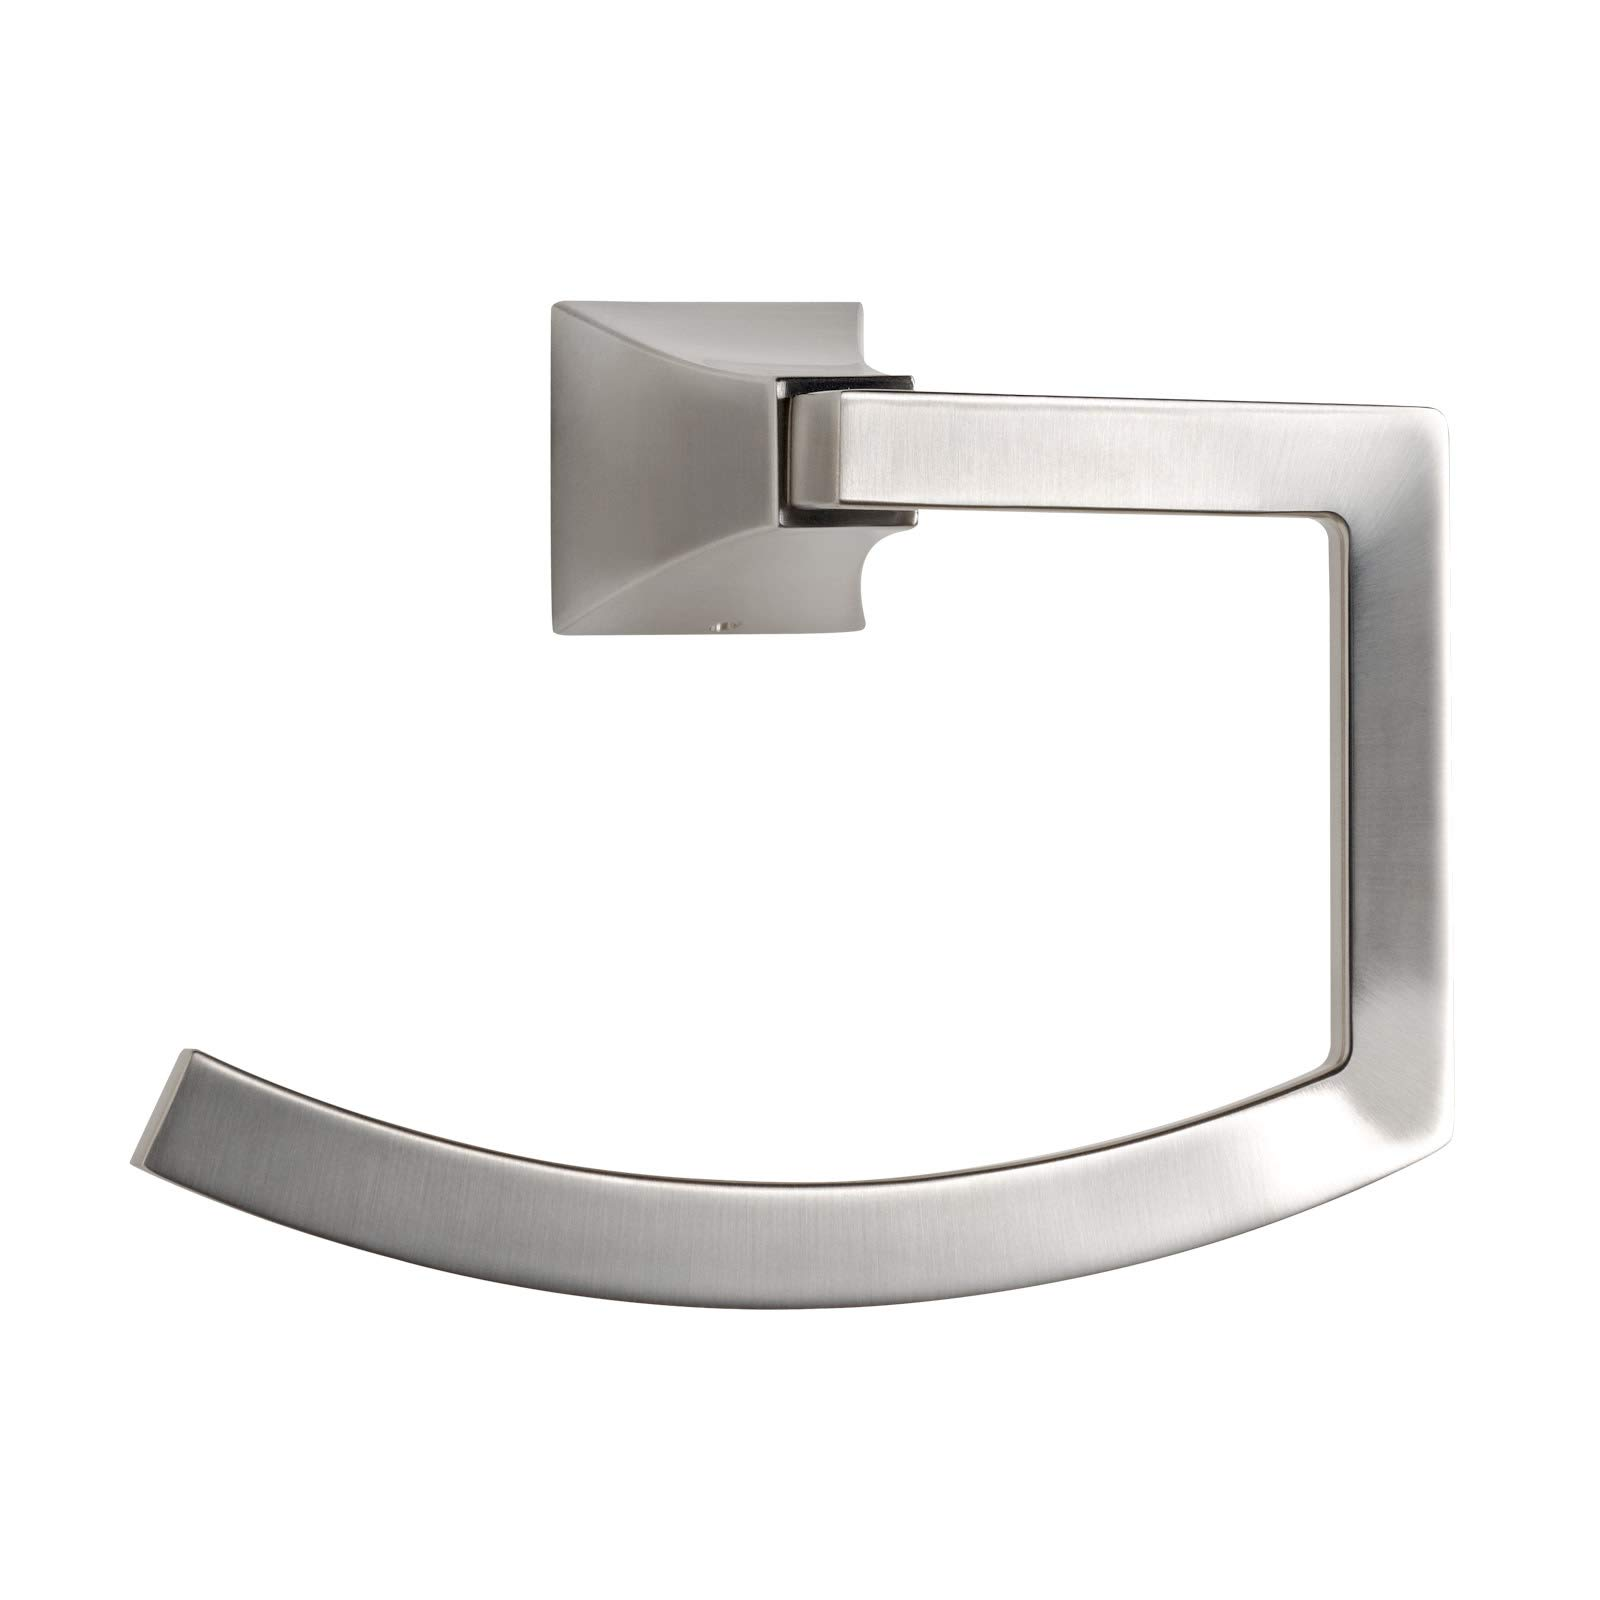 Mirabelle MIRVLTRBN Vilamonte 6-7/10'' Wall Mounted Towel Ring